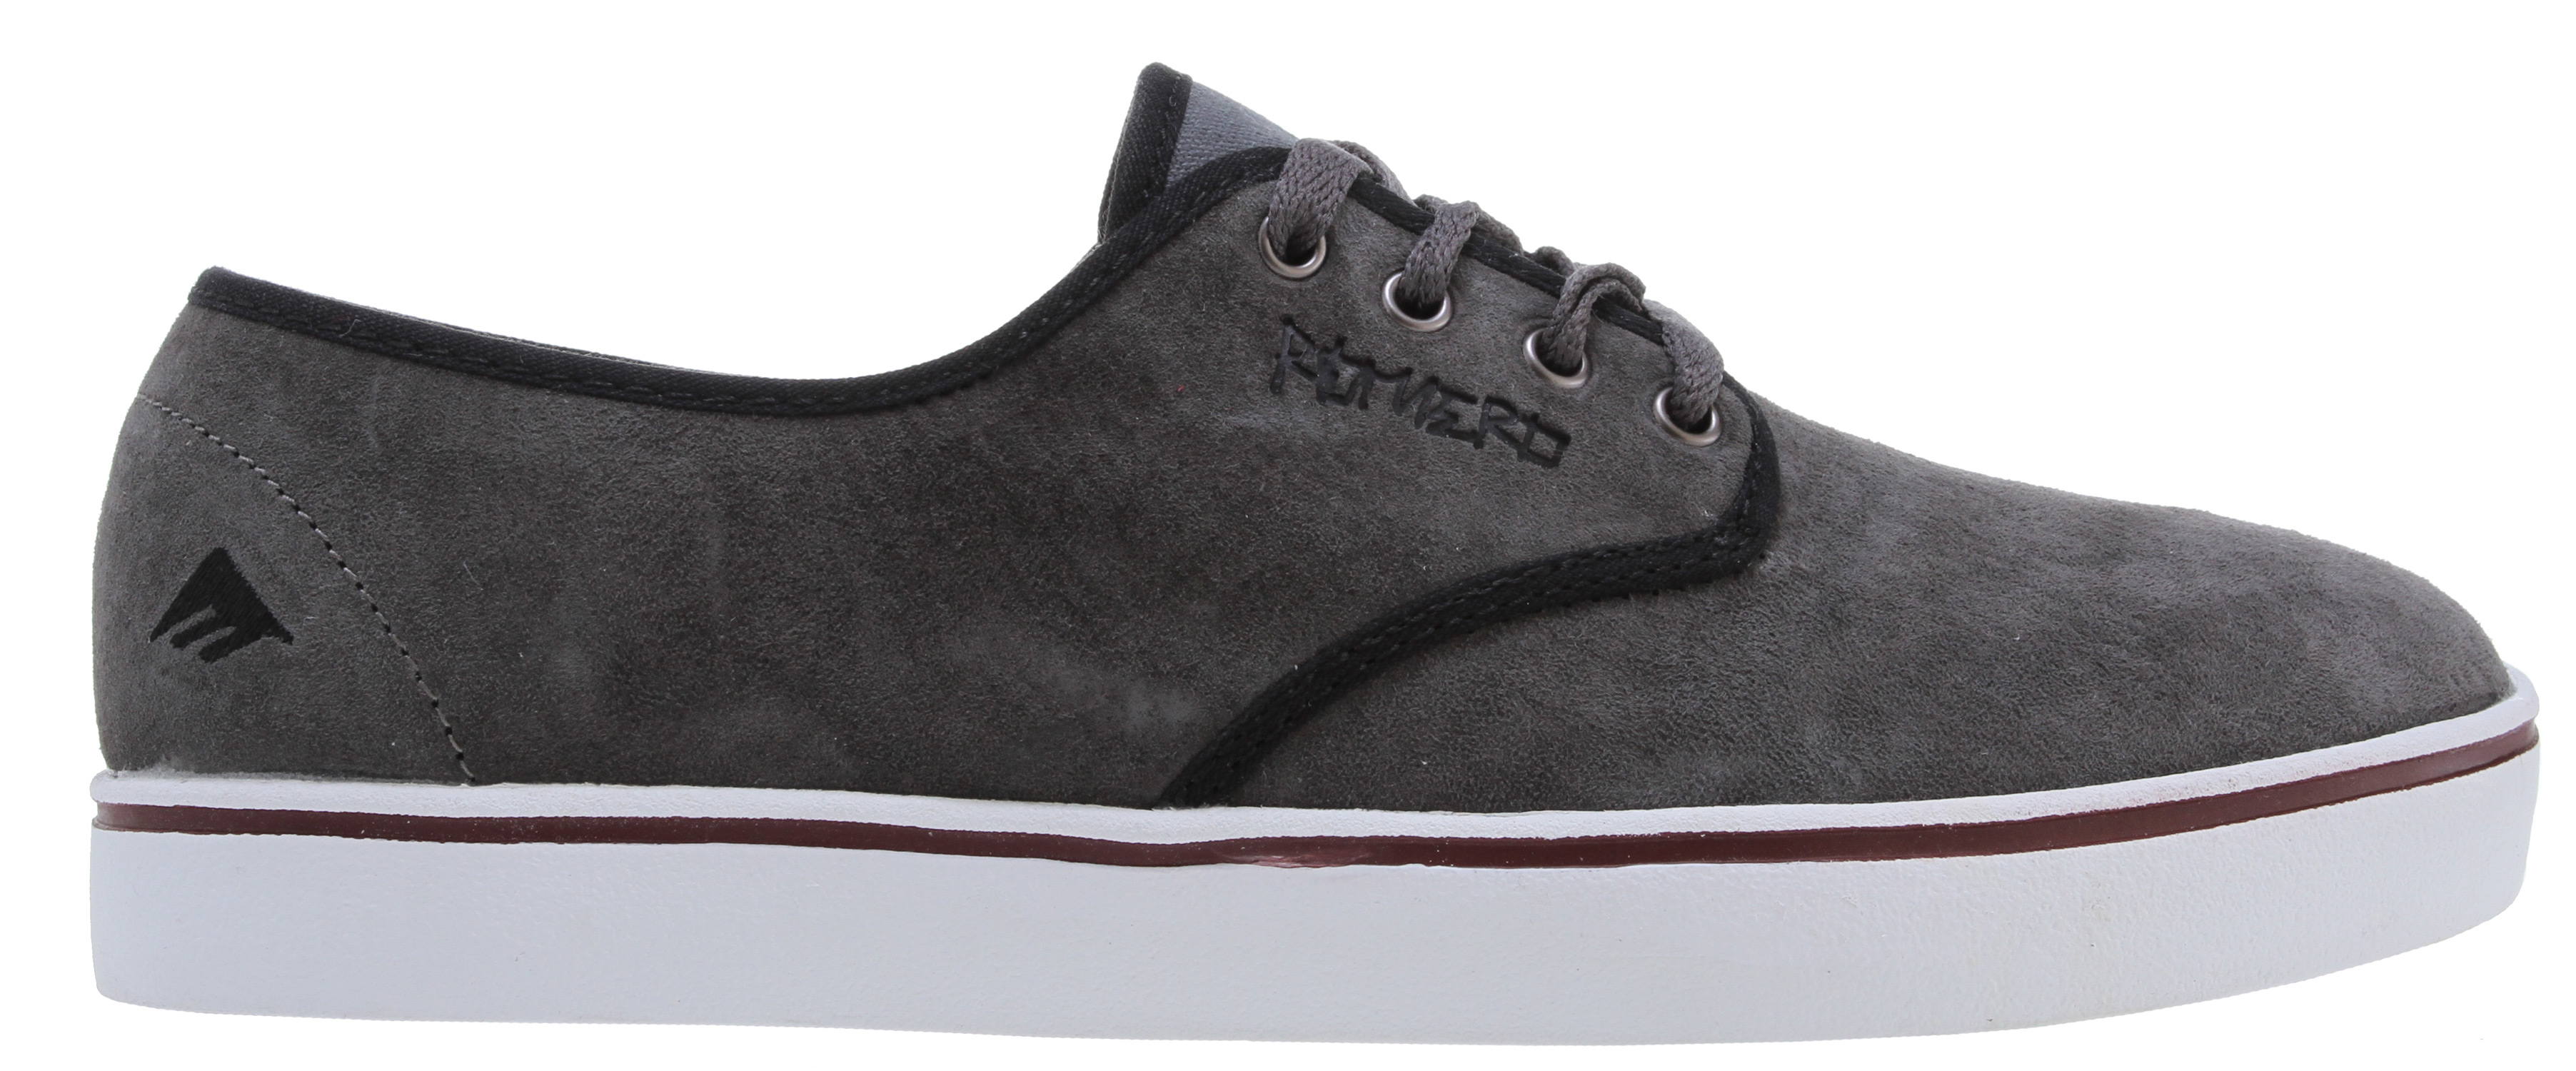 Skateboard Key Features of the Emerica Leo Laced Skate Shoes: Designed by Leo Romero Suede upper materials Thin padded tongue and collar Box-stitched Ollie area for protection STI Foam Lite level 1 footbed 400 NBS natural gum rubber cupsole - $44.95